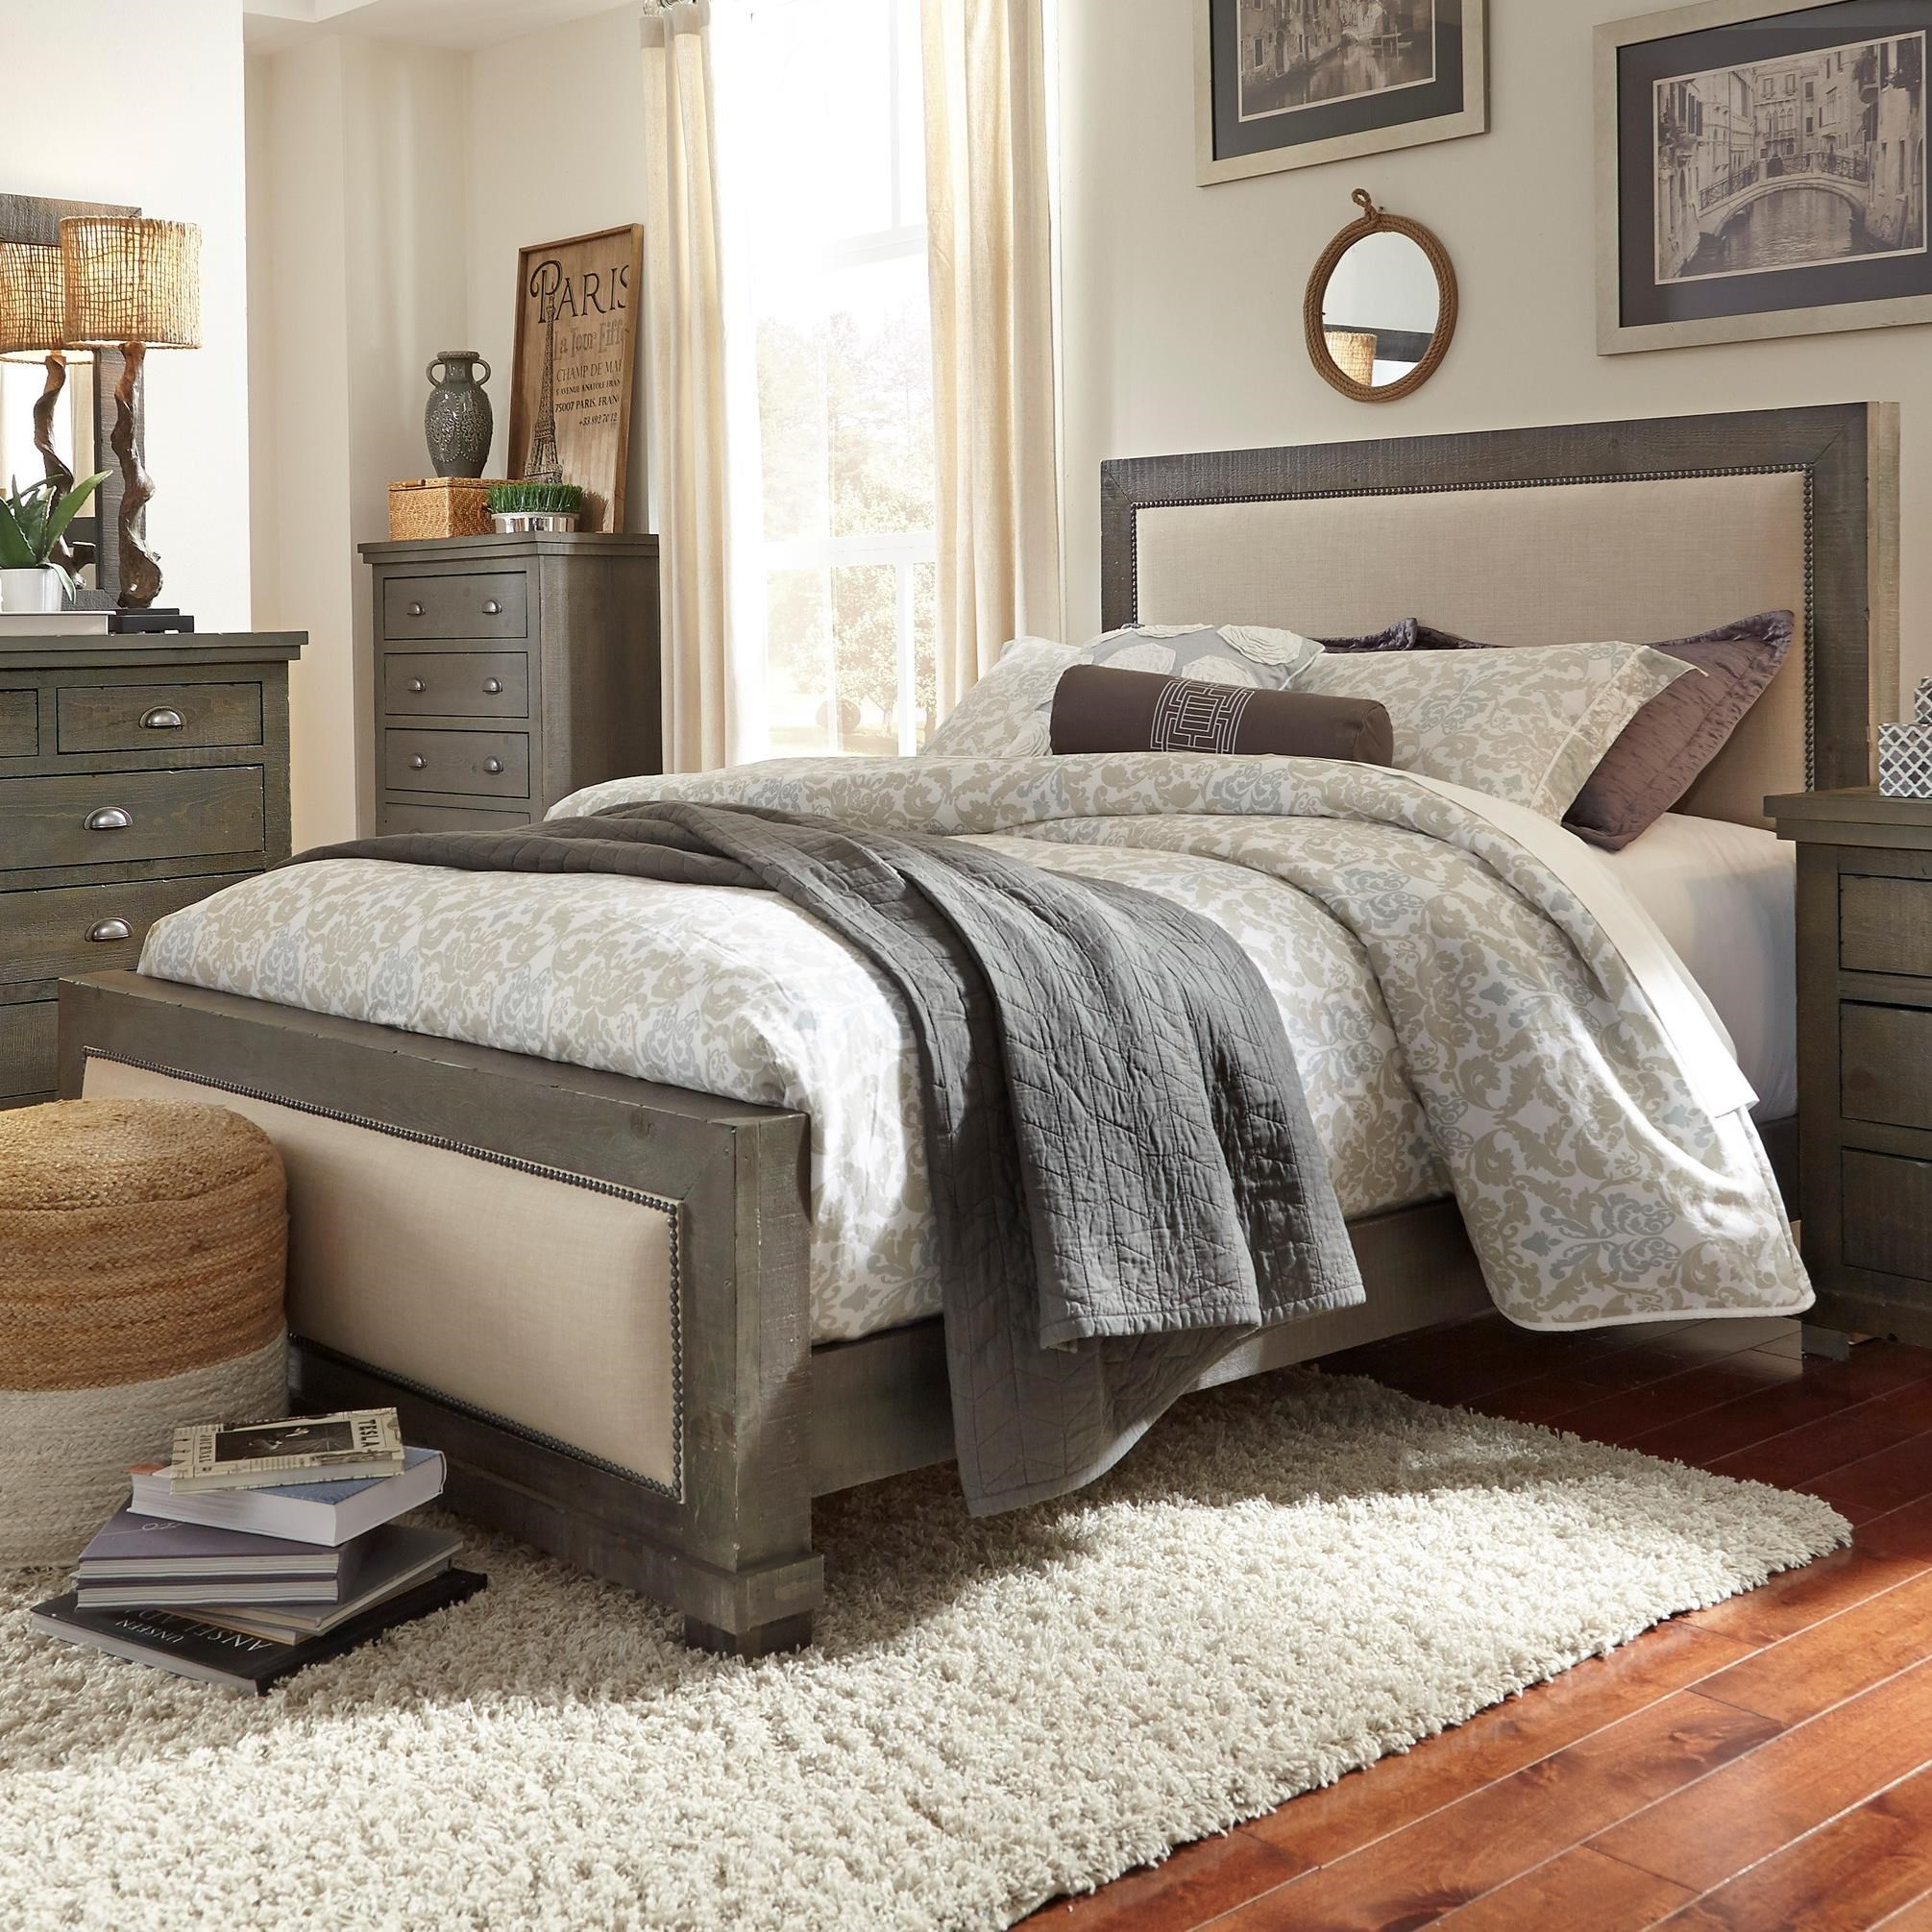 Progressive furniture willow king upholstered bed with distressed pine frame miskelly for Distressed pine bedroom furniture